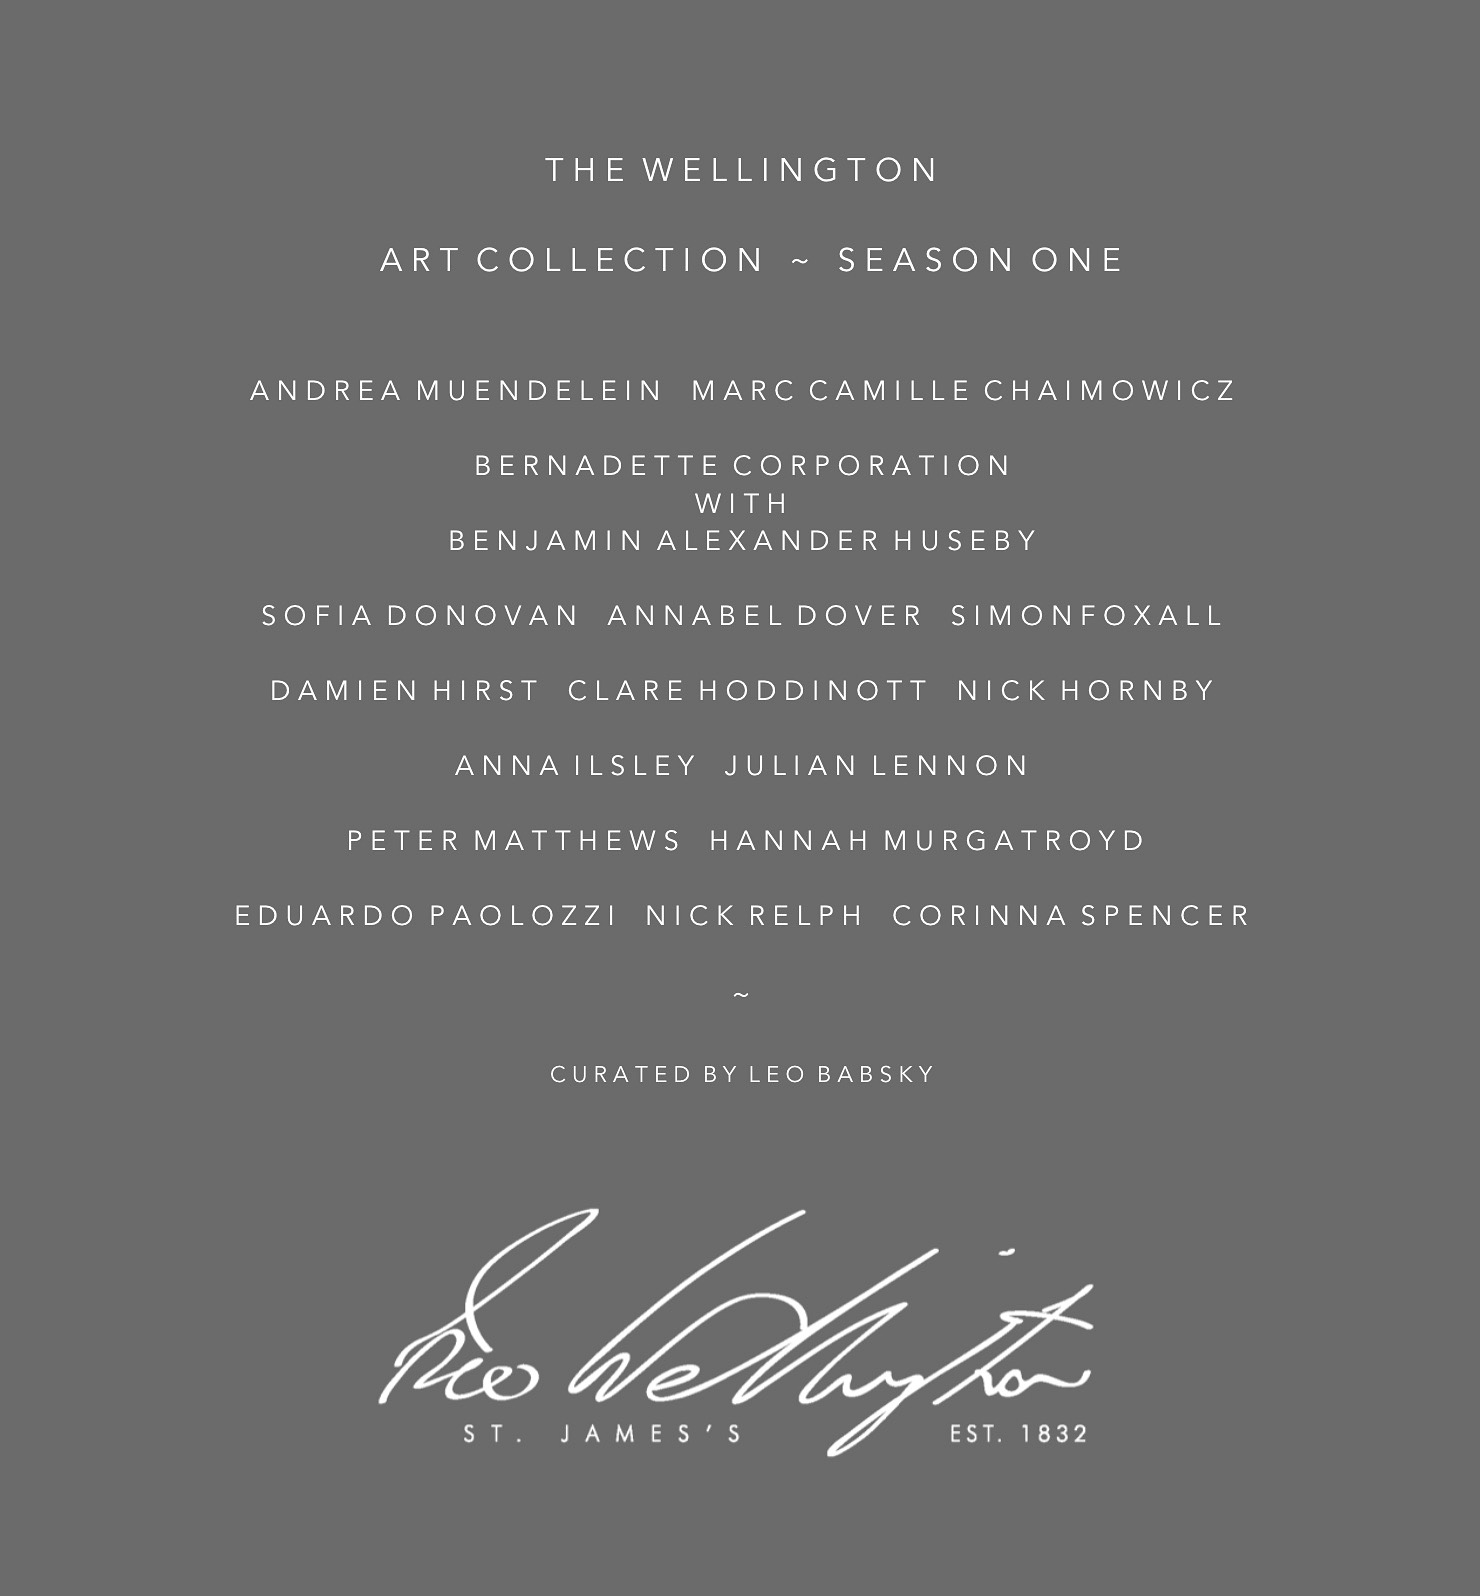 LB ~ Curatorial now directs the art program for The Wellington St James's Restaurant and Members Club.  The first hang of permanent collection and artist presentations include works from Damien Hirst, Julian Lennon, Eduardo Paolozzi, Marc Camille Chaimowicz, Nick Relph and Hannah Murgatroyd.